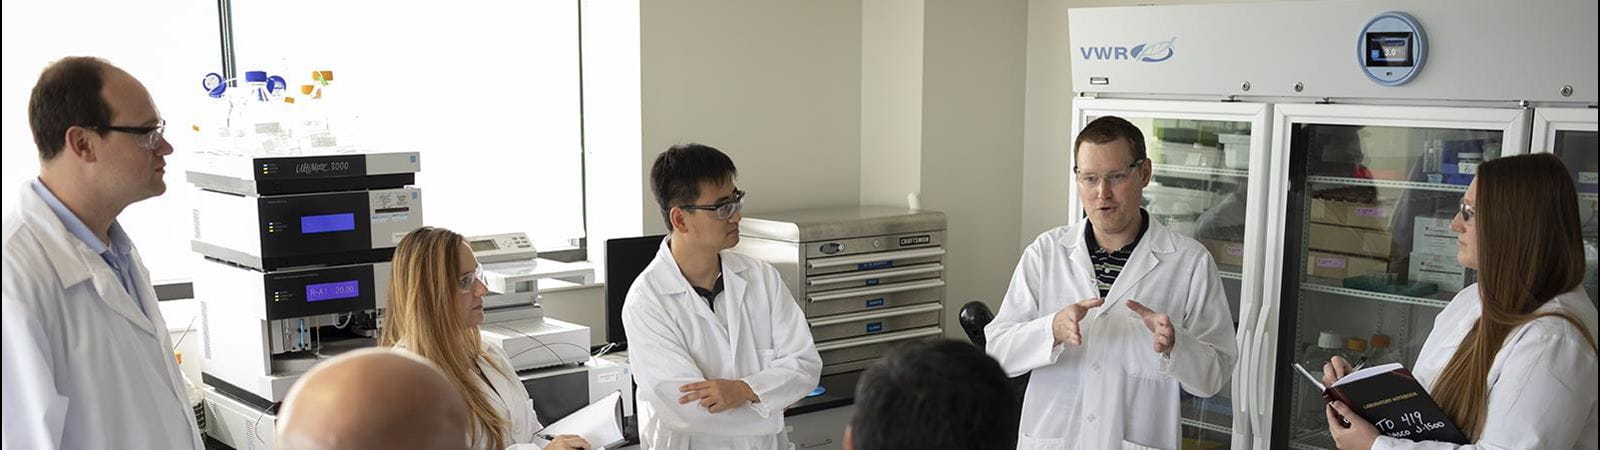 group meeting of scientists in white lab coats